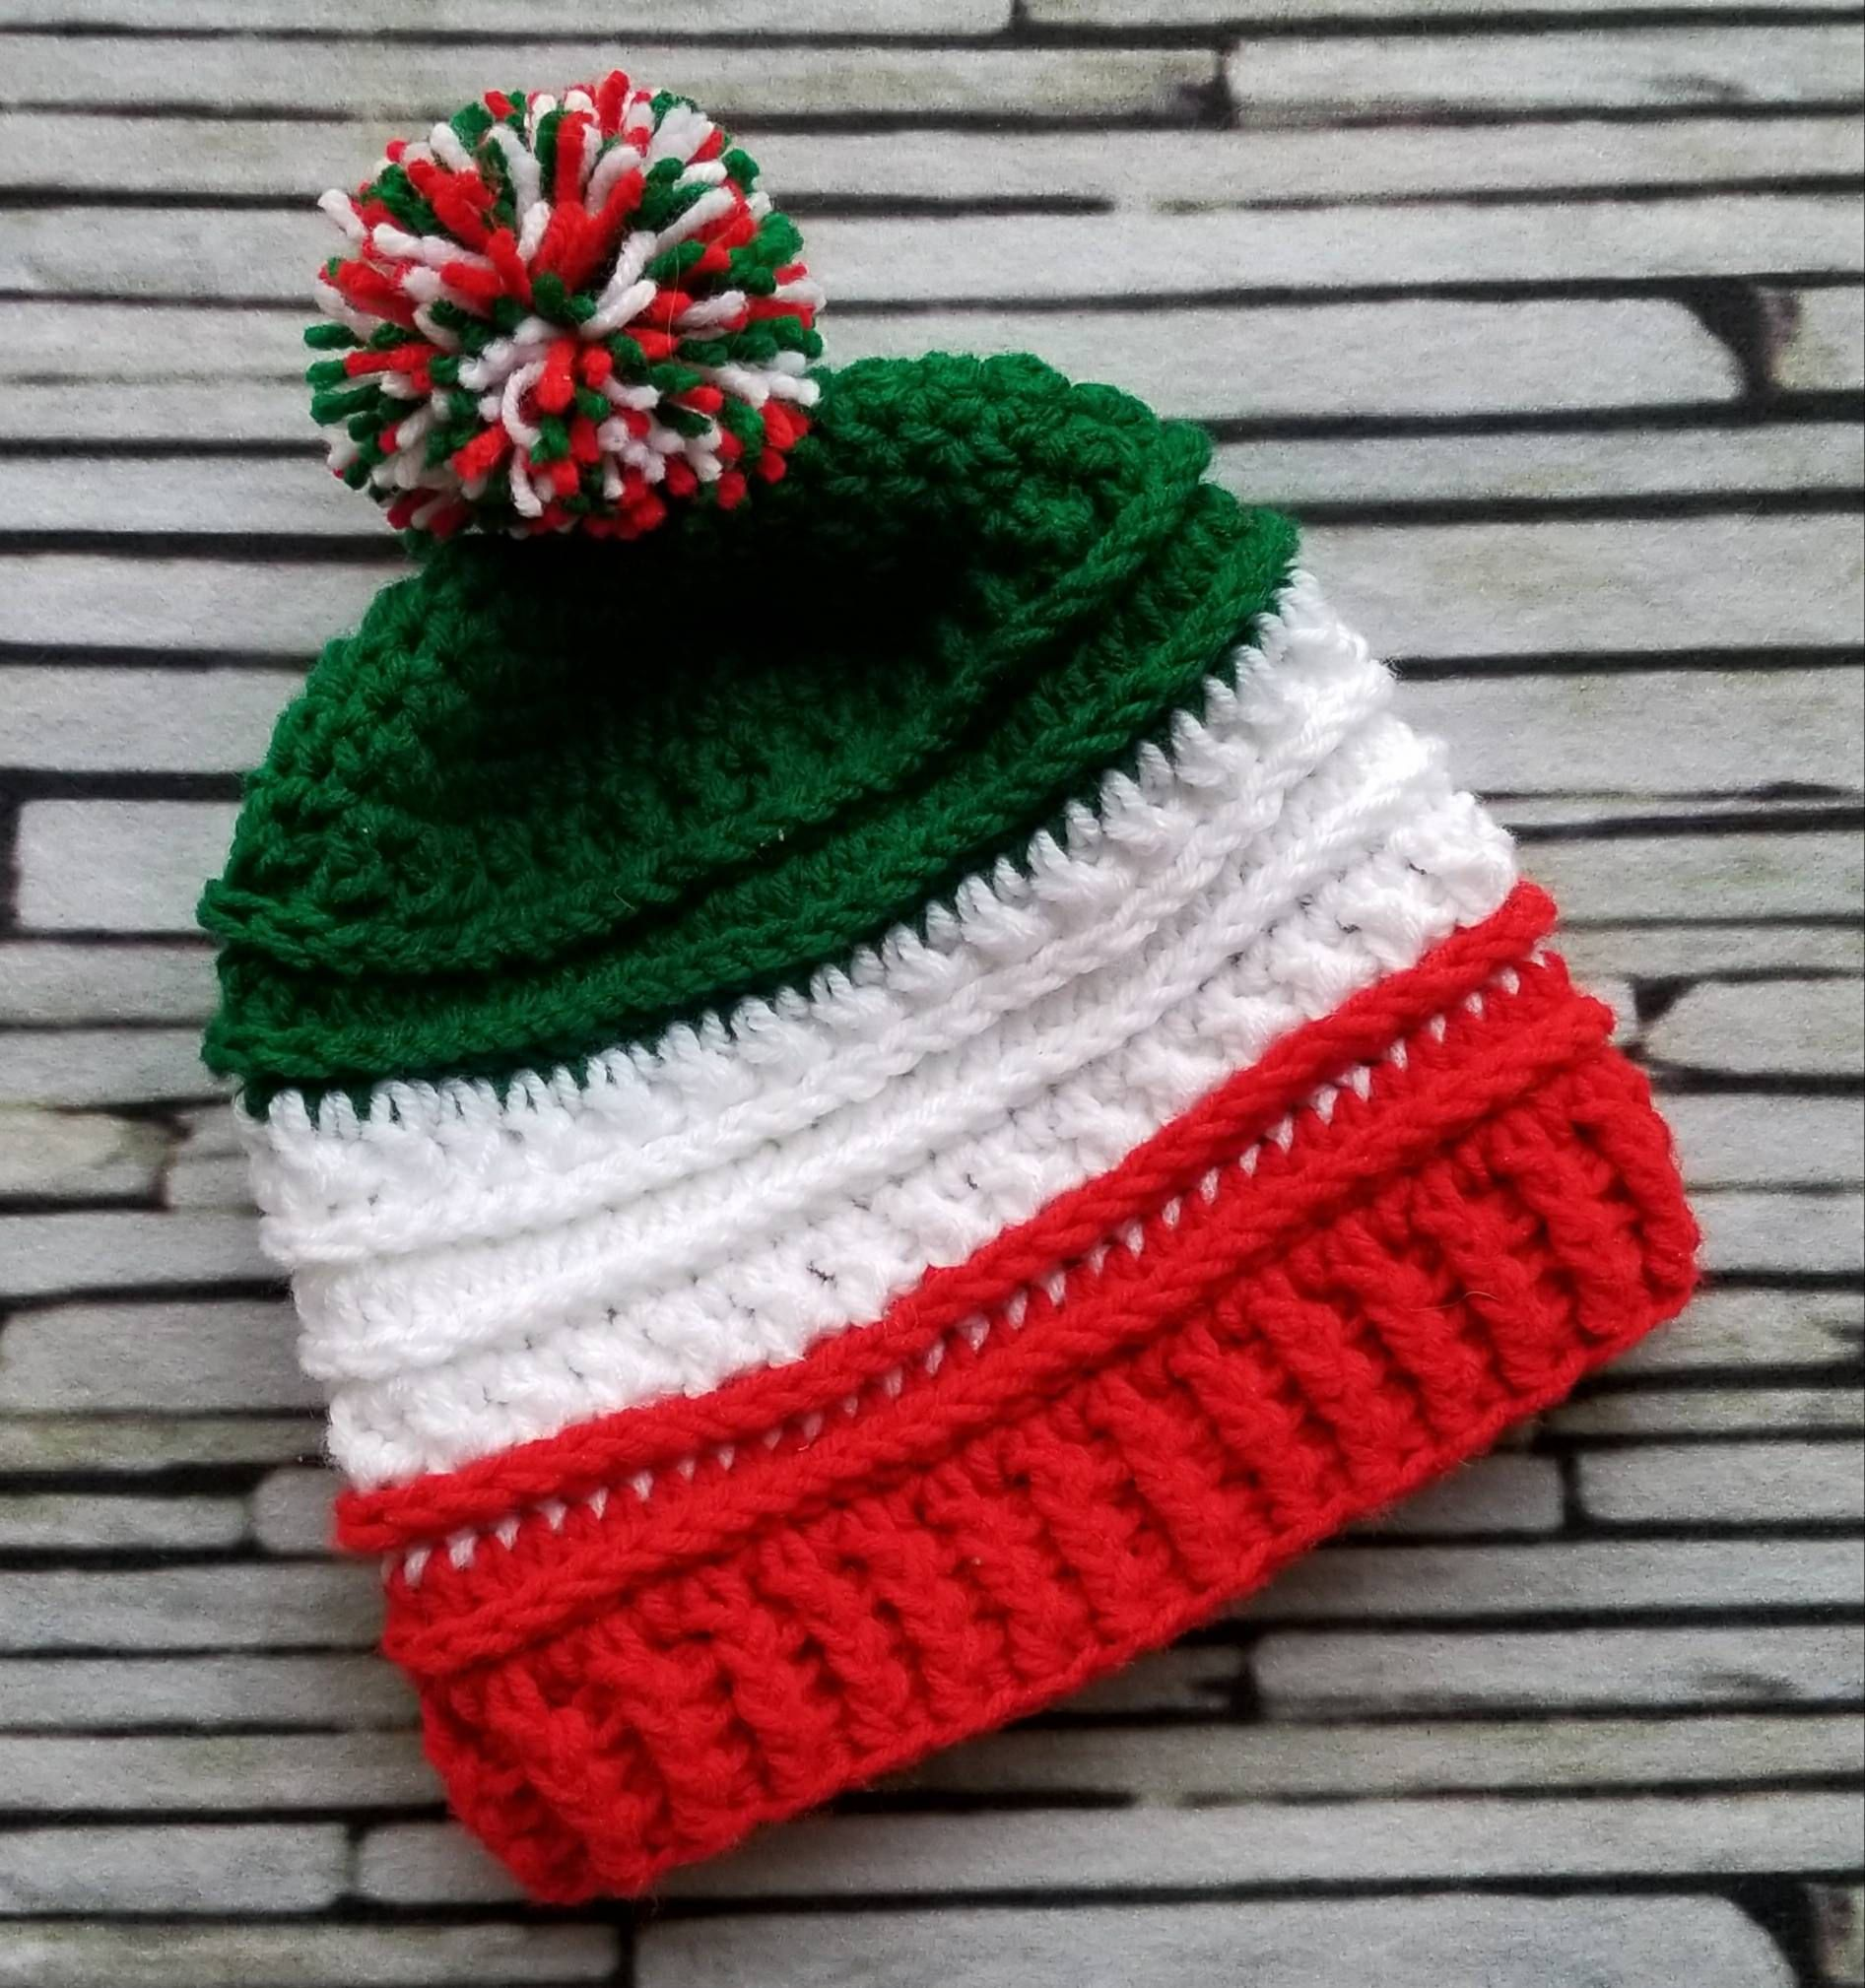 f36bef63bc6 Italian Flag Hat - Italy - Olympics beanie -striped country color hat -  green white red - crochet beanie - support your team - winter by  HookedByAmanda on ...